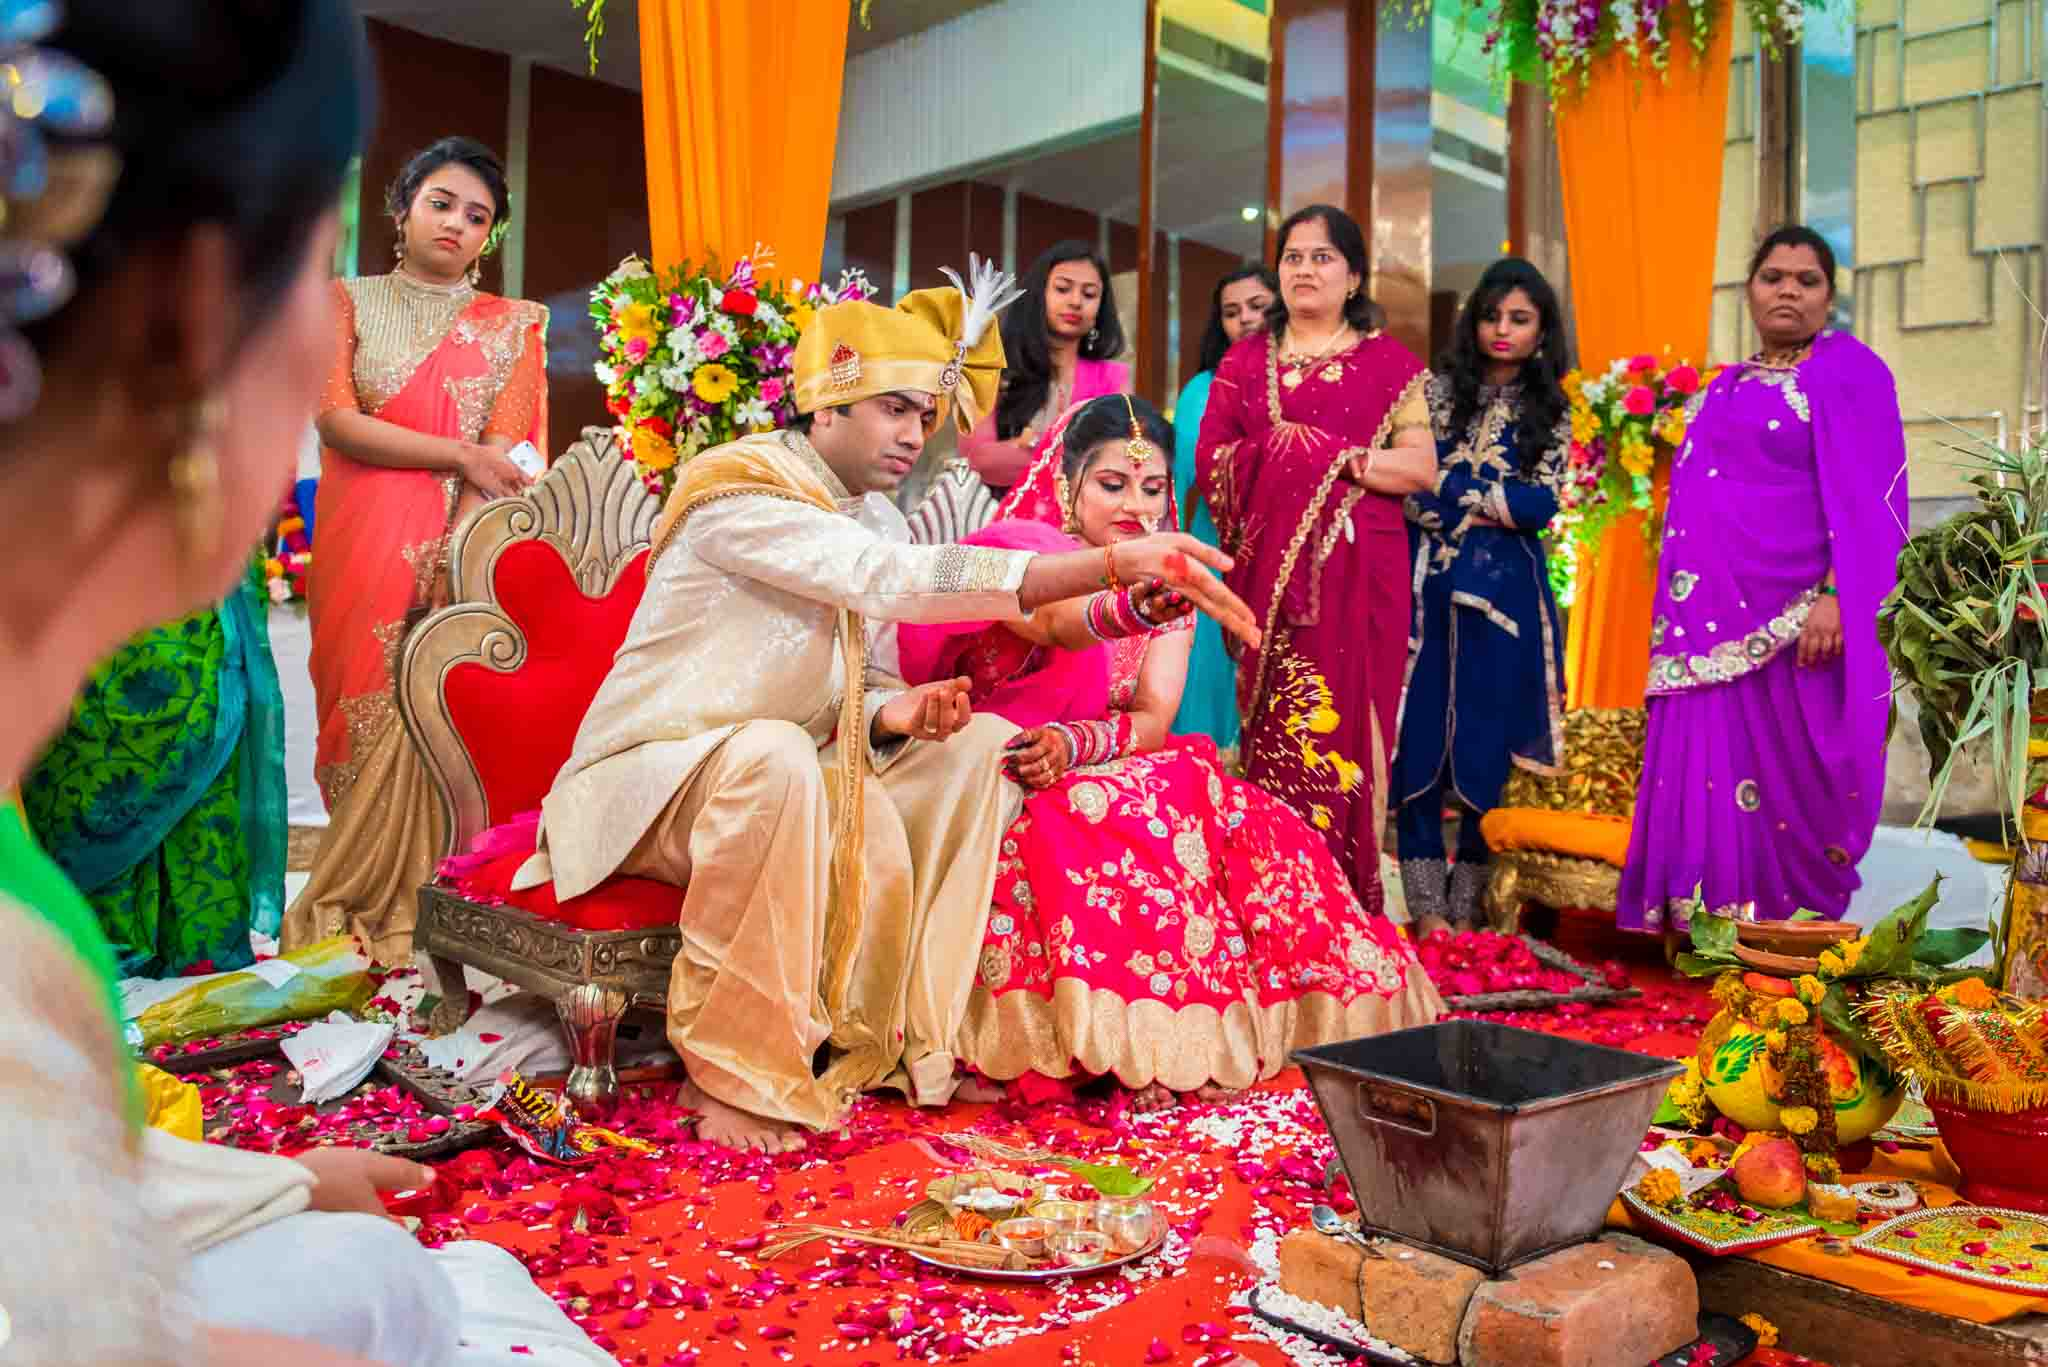 Candid-Wedding-Photography-Nagpur-Destination-91